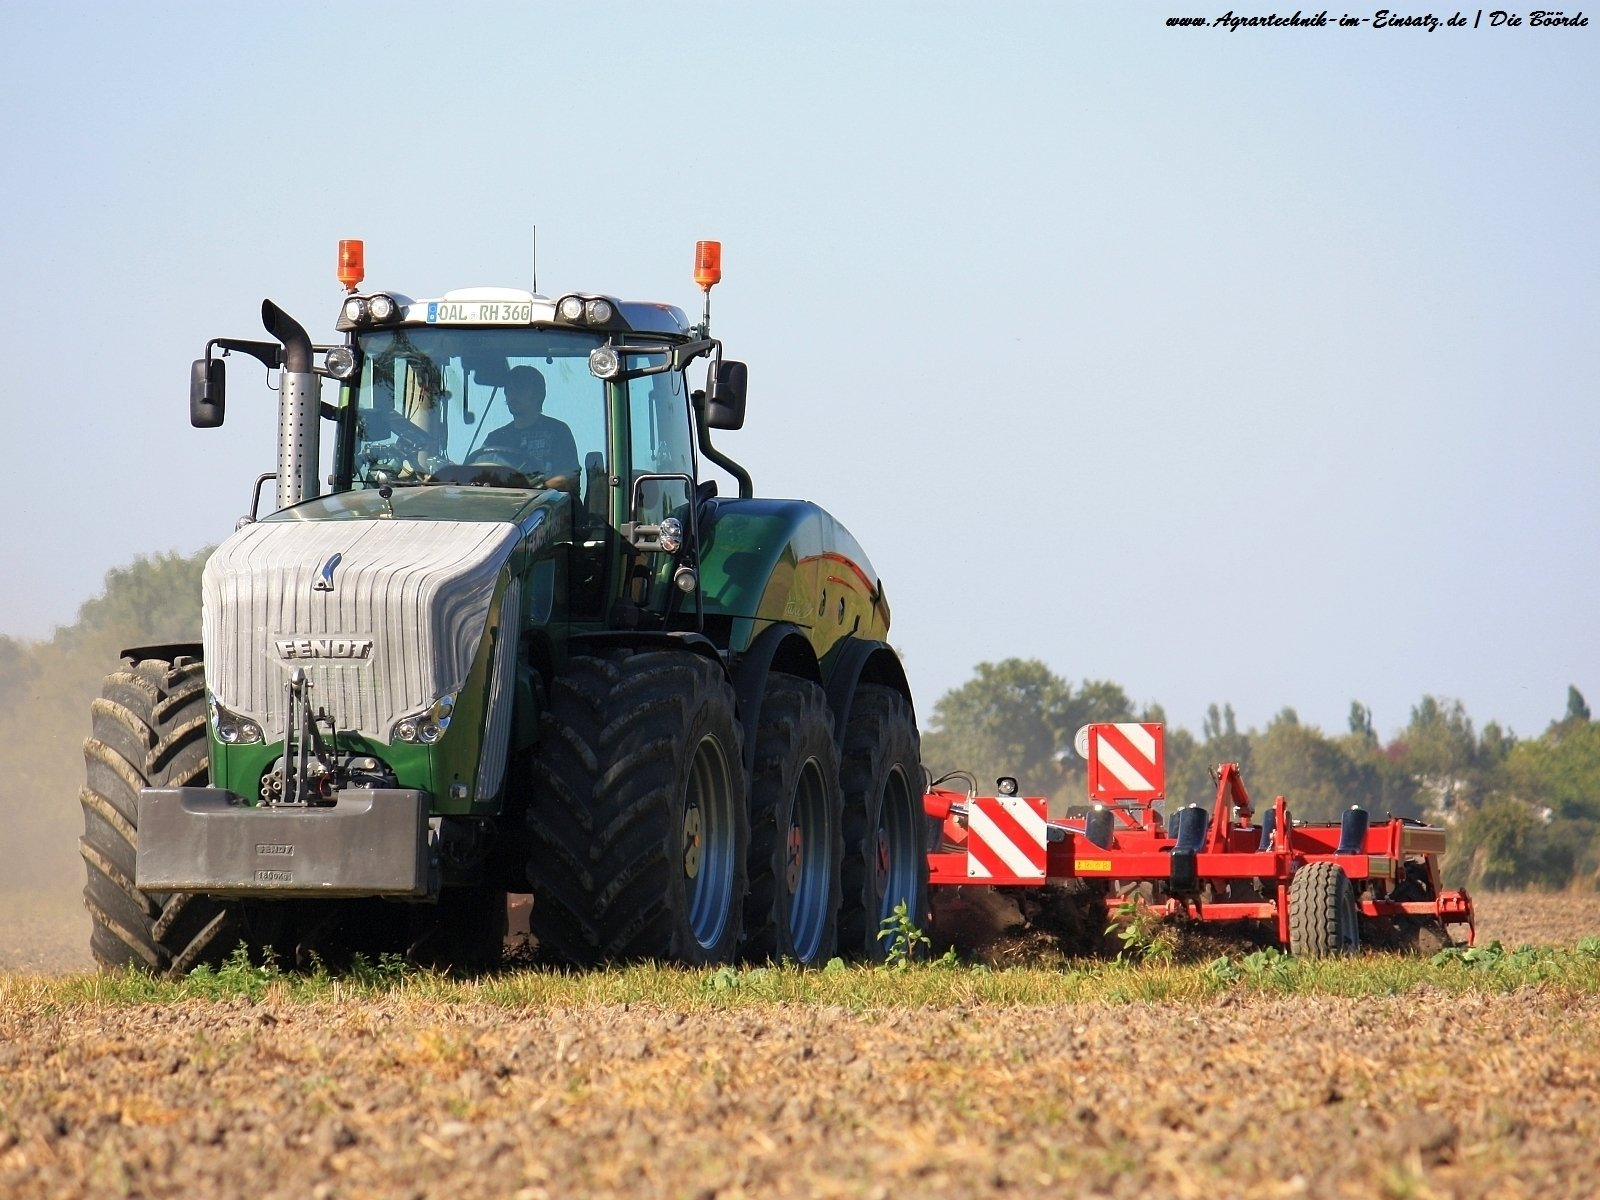 Fendt Trisix Tractor Wallpaper and Background Image 1600x1200 1600x1200